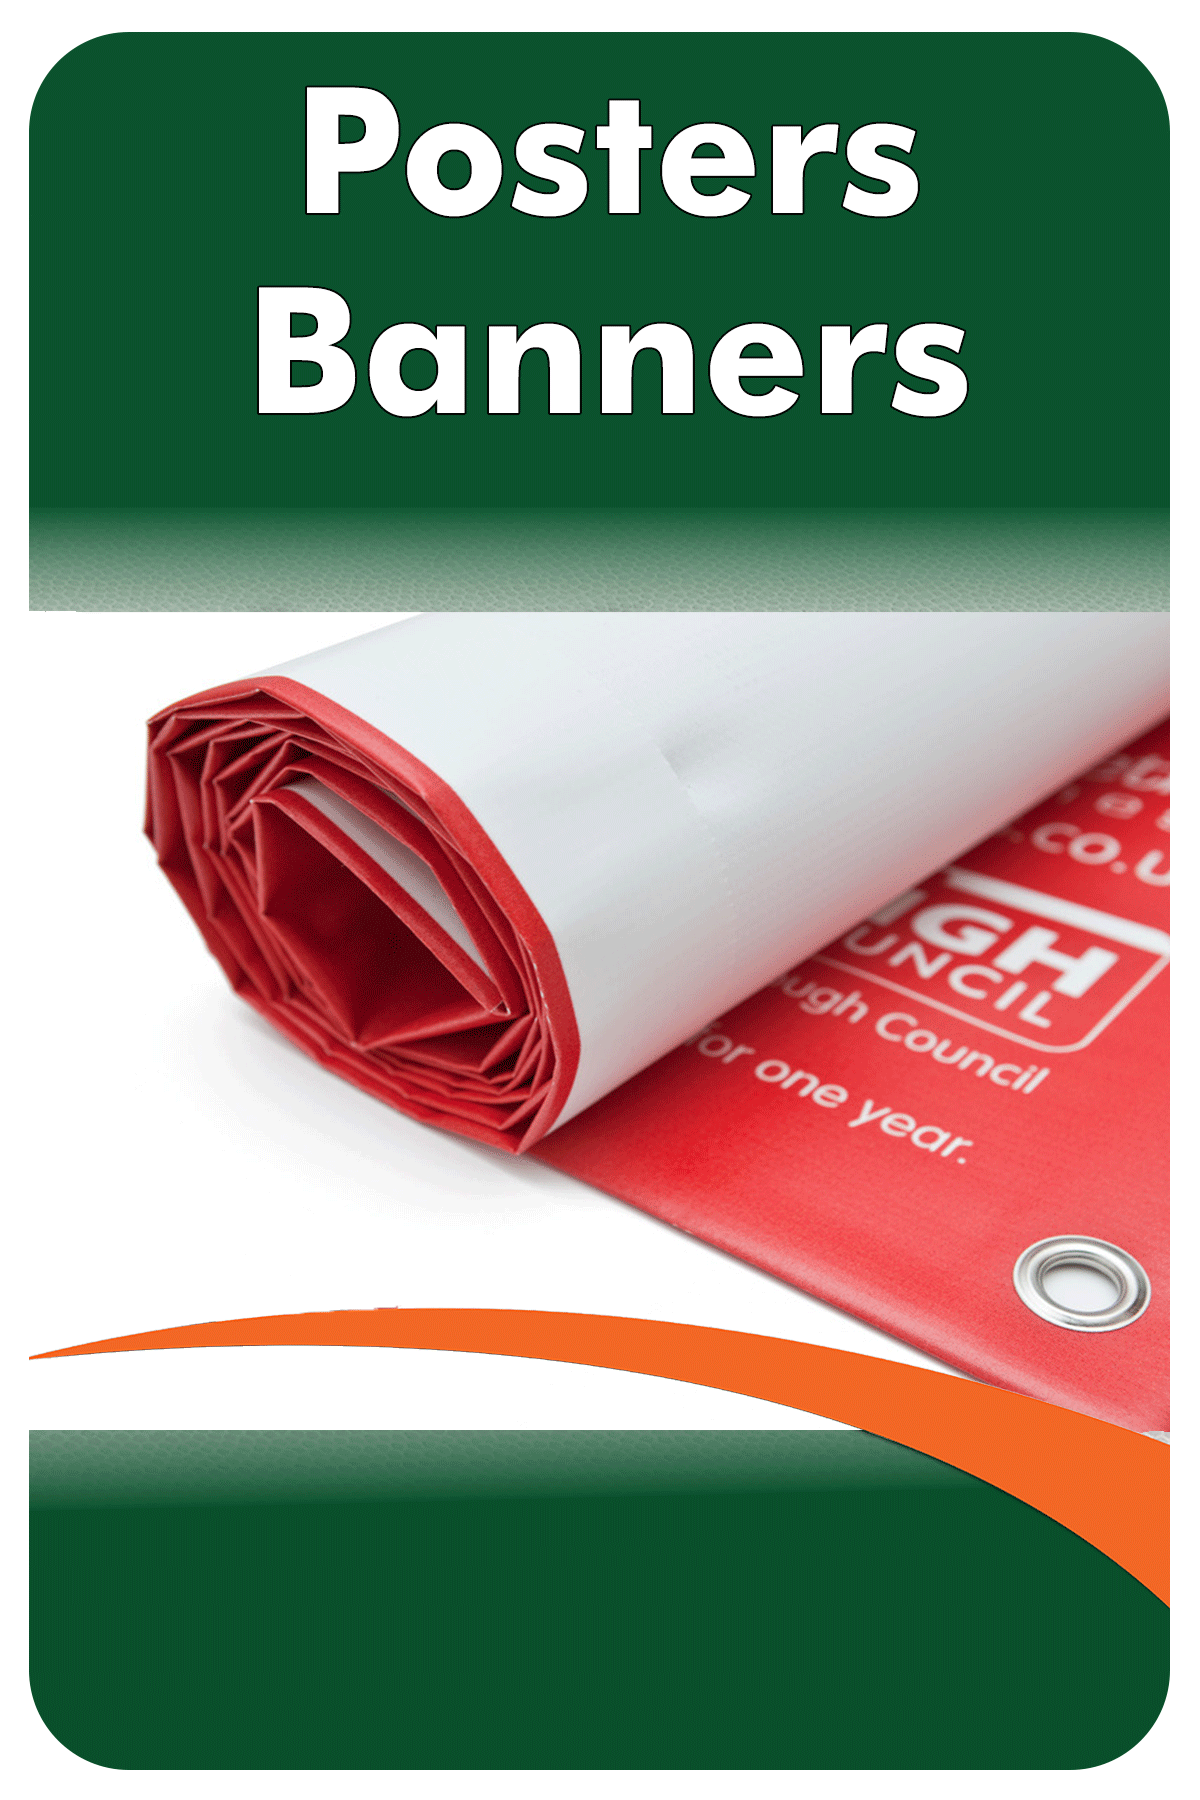 Posters Banners